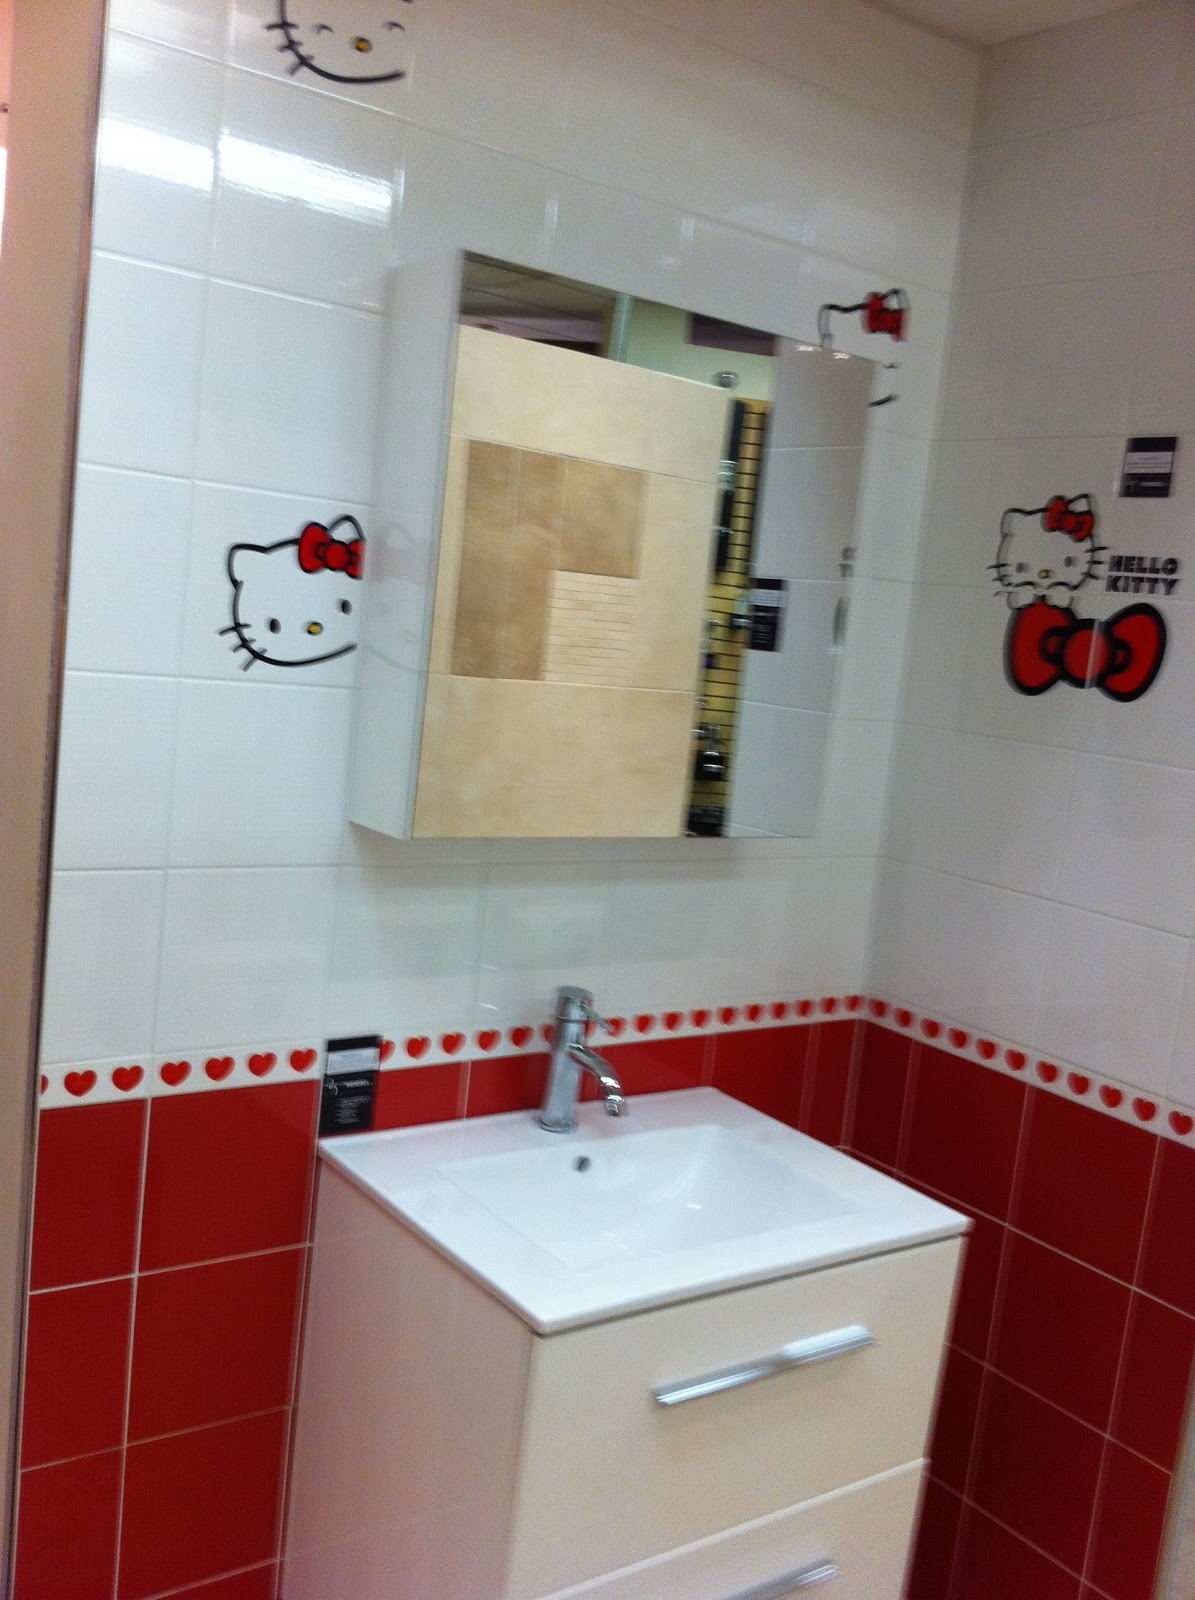 to da loos hello kitty bathroom tiles. Black Bedroom Furniture Sets. Home Design Ideas